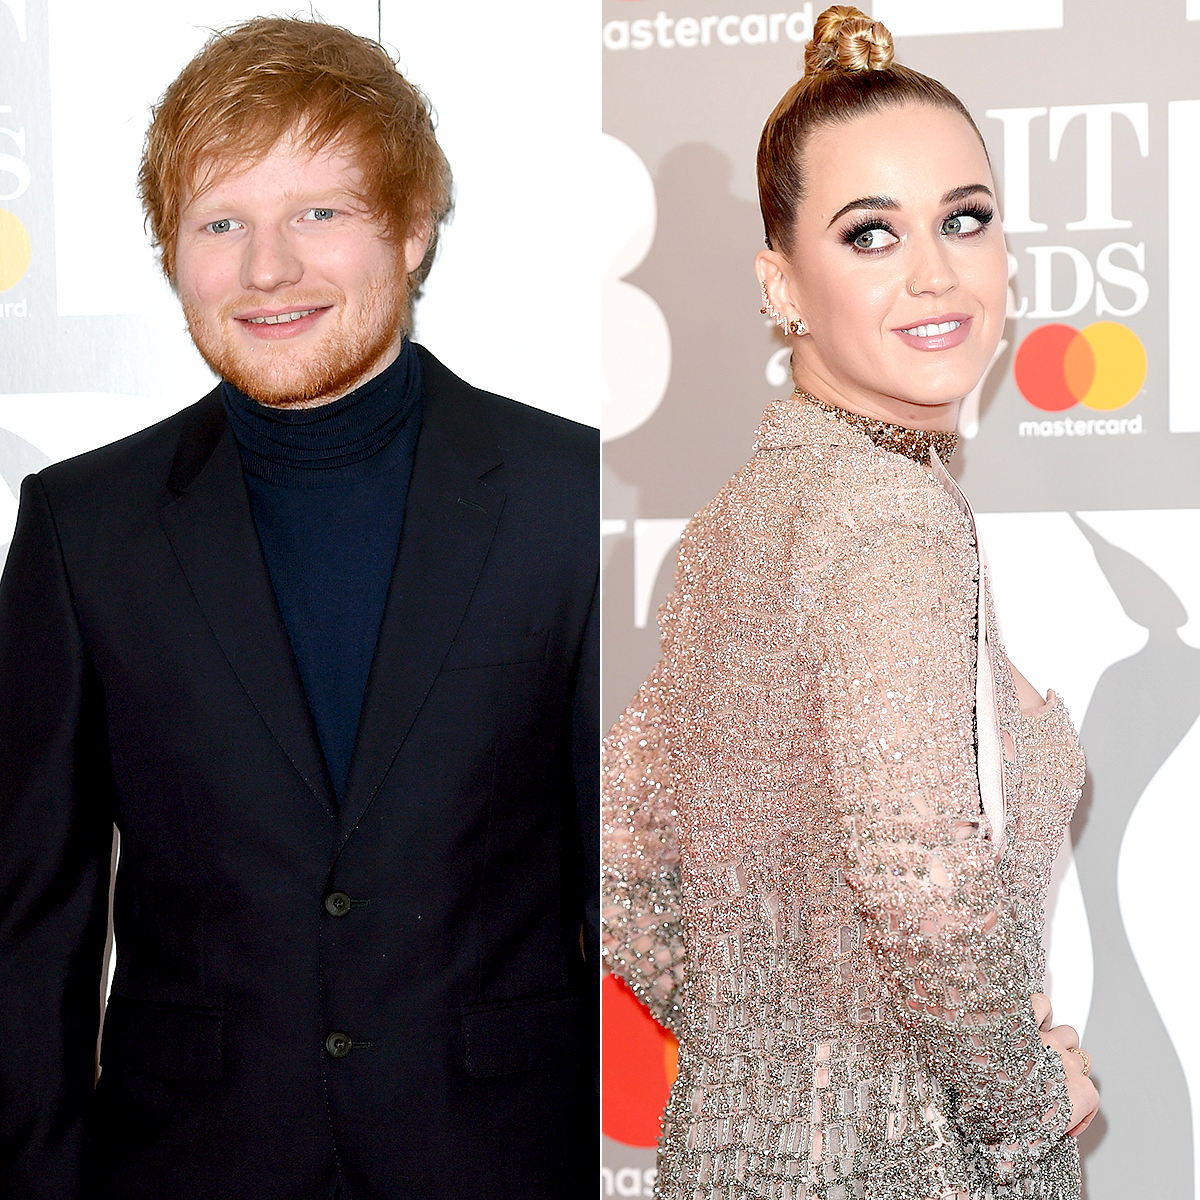 Ed Sheeran and Katy Perry at the Brits Awards 2017.